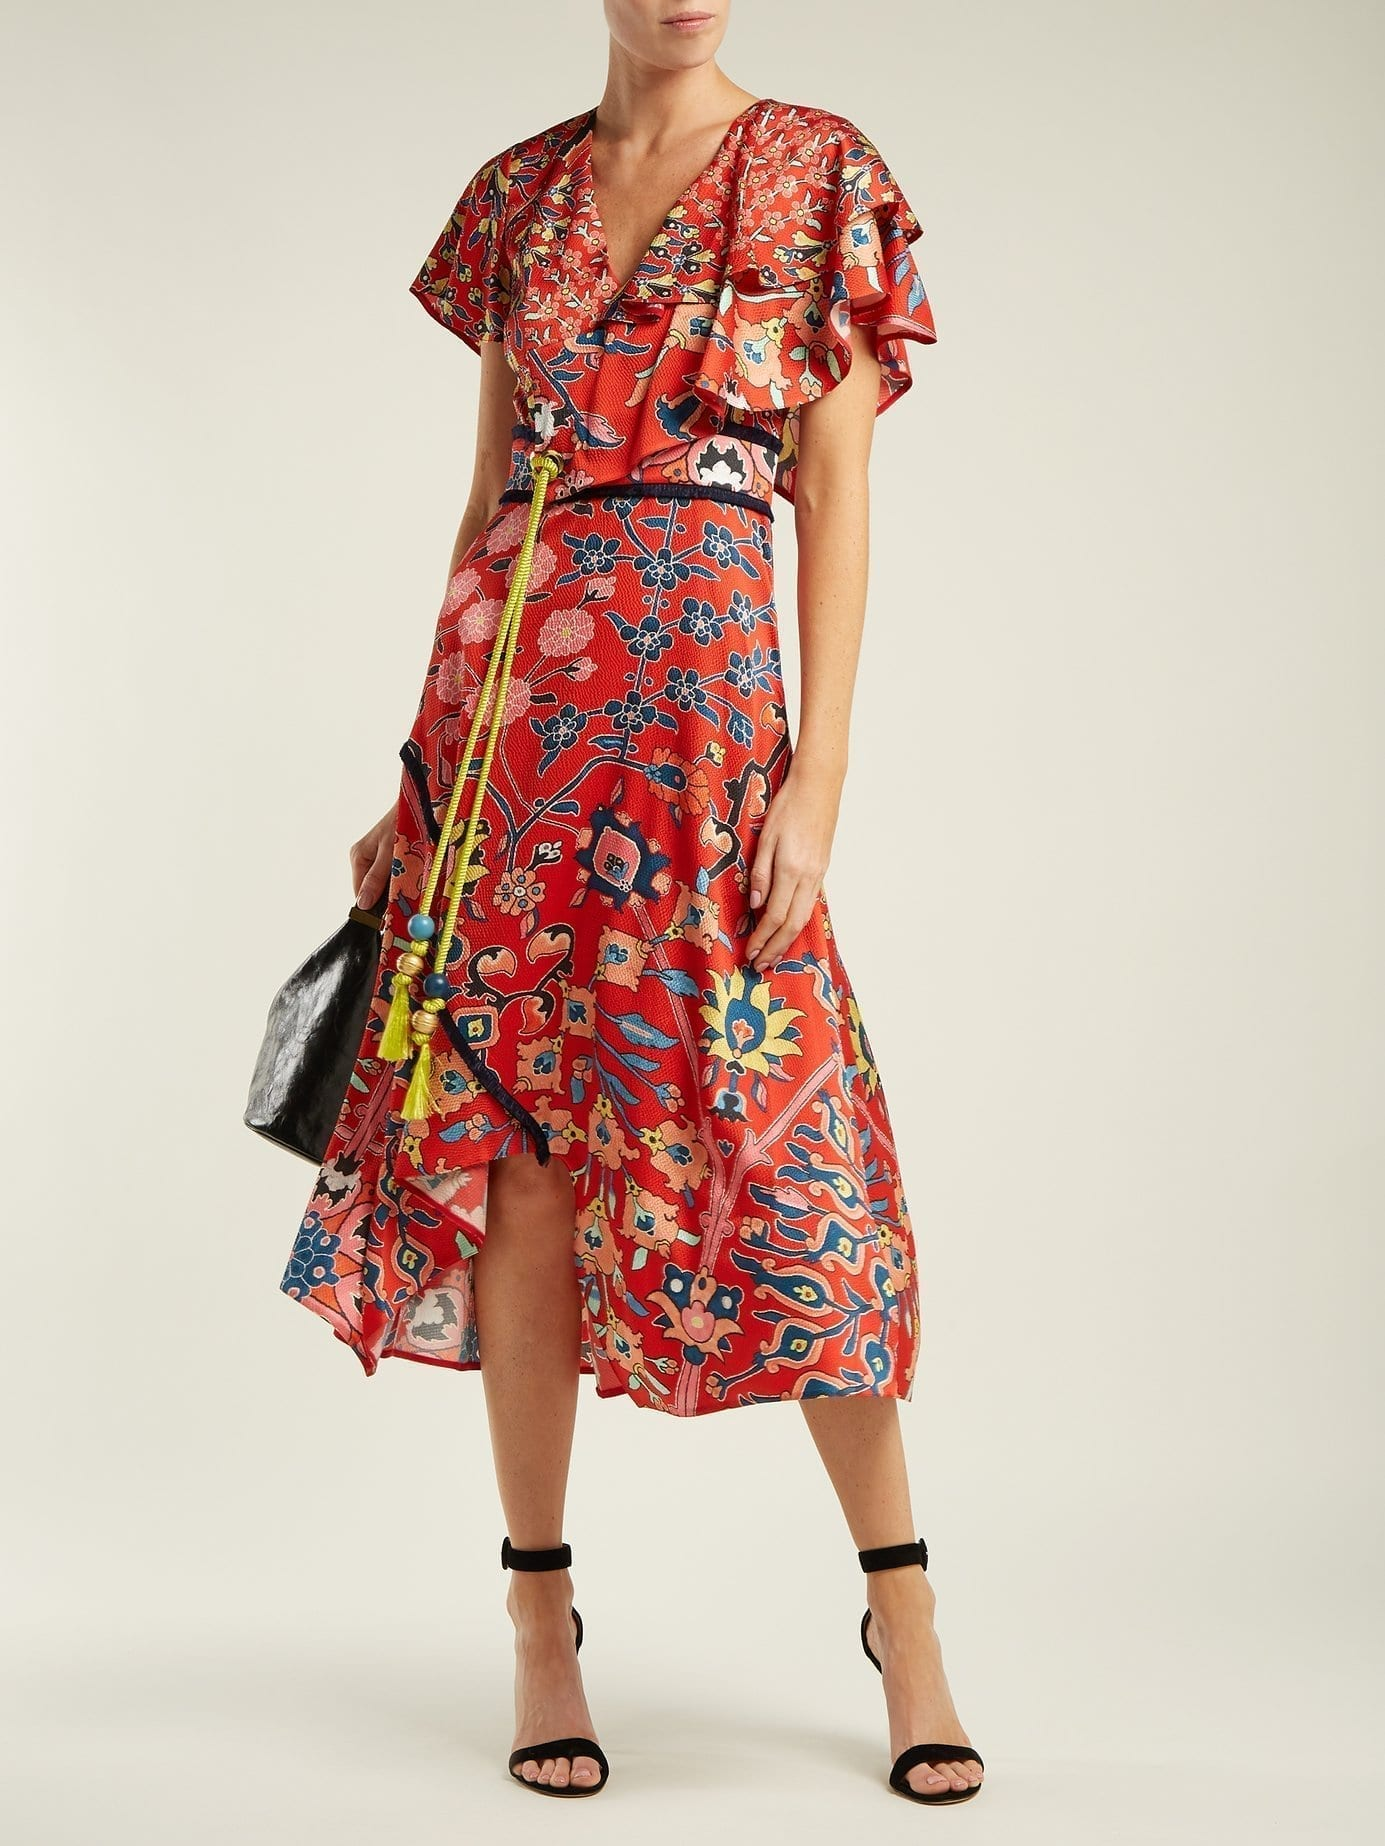 PETER PILOTTO Stretch Silk Red / Floral Printed Dress